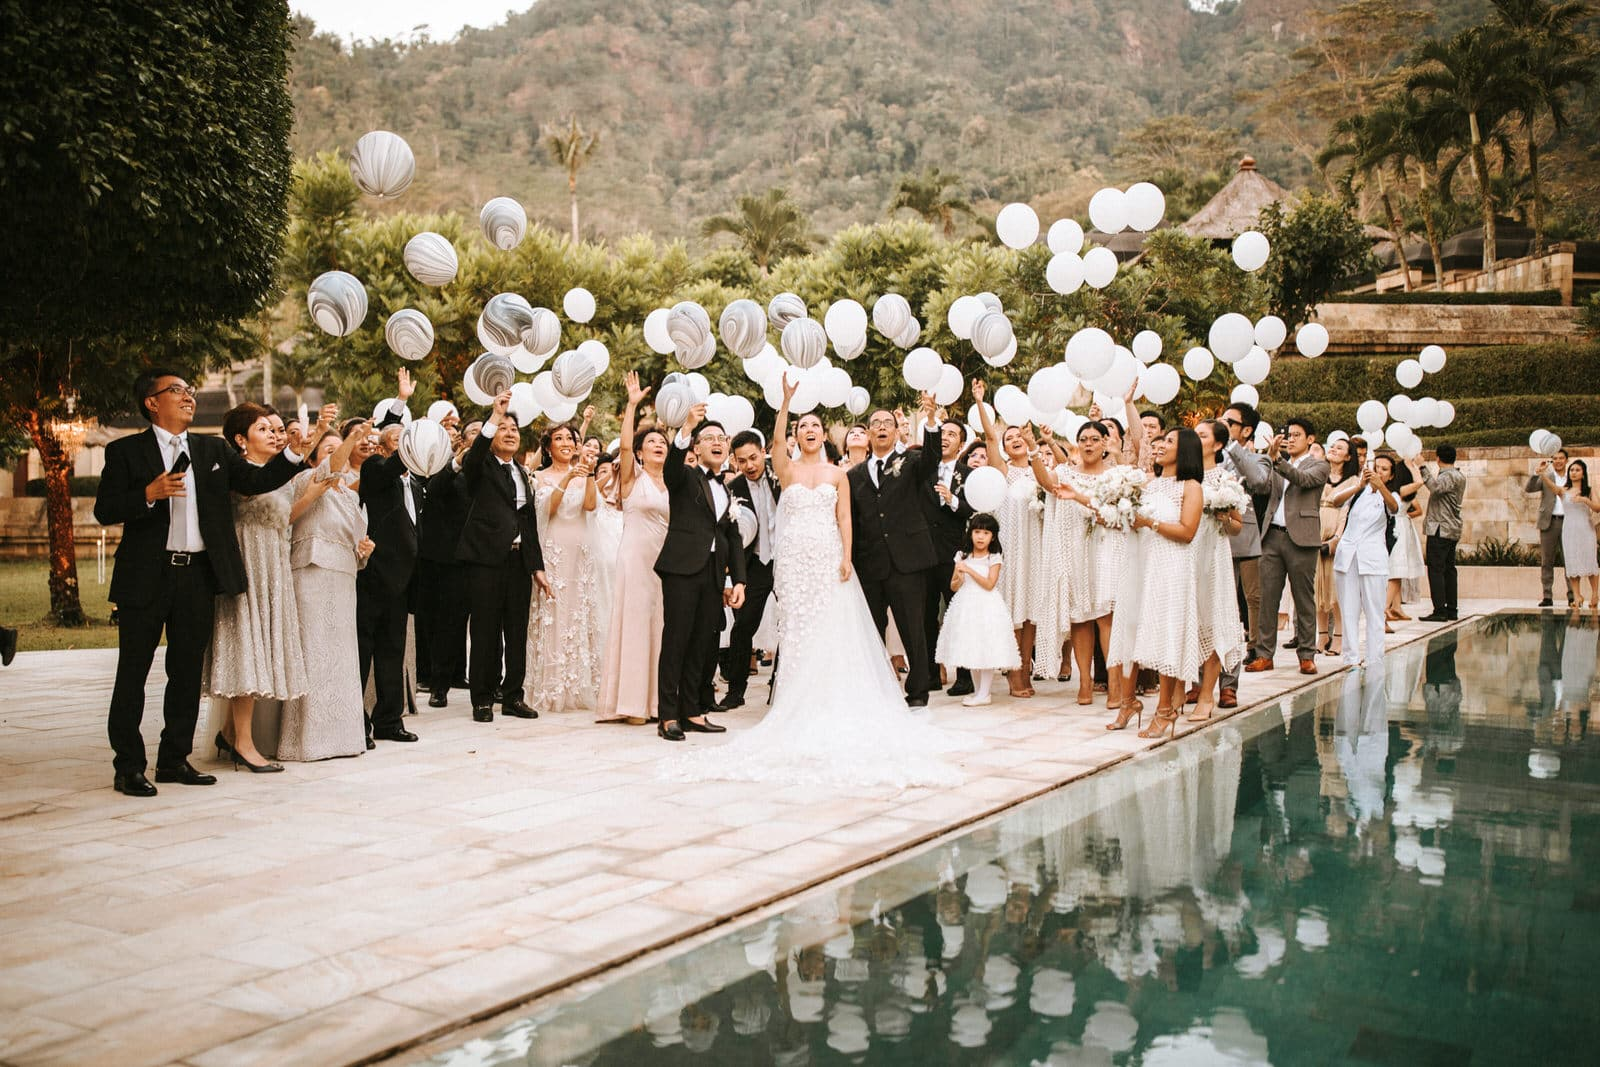 The wedding couple and their guests are releasing balloons into the air.